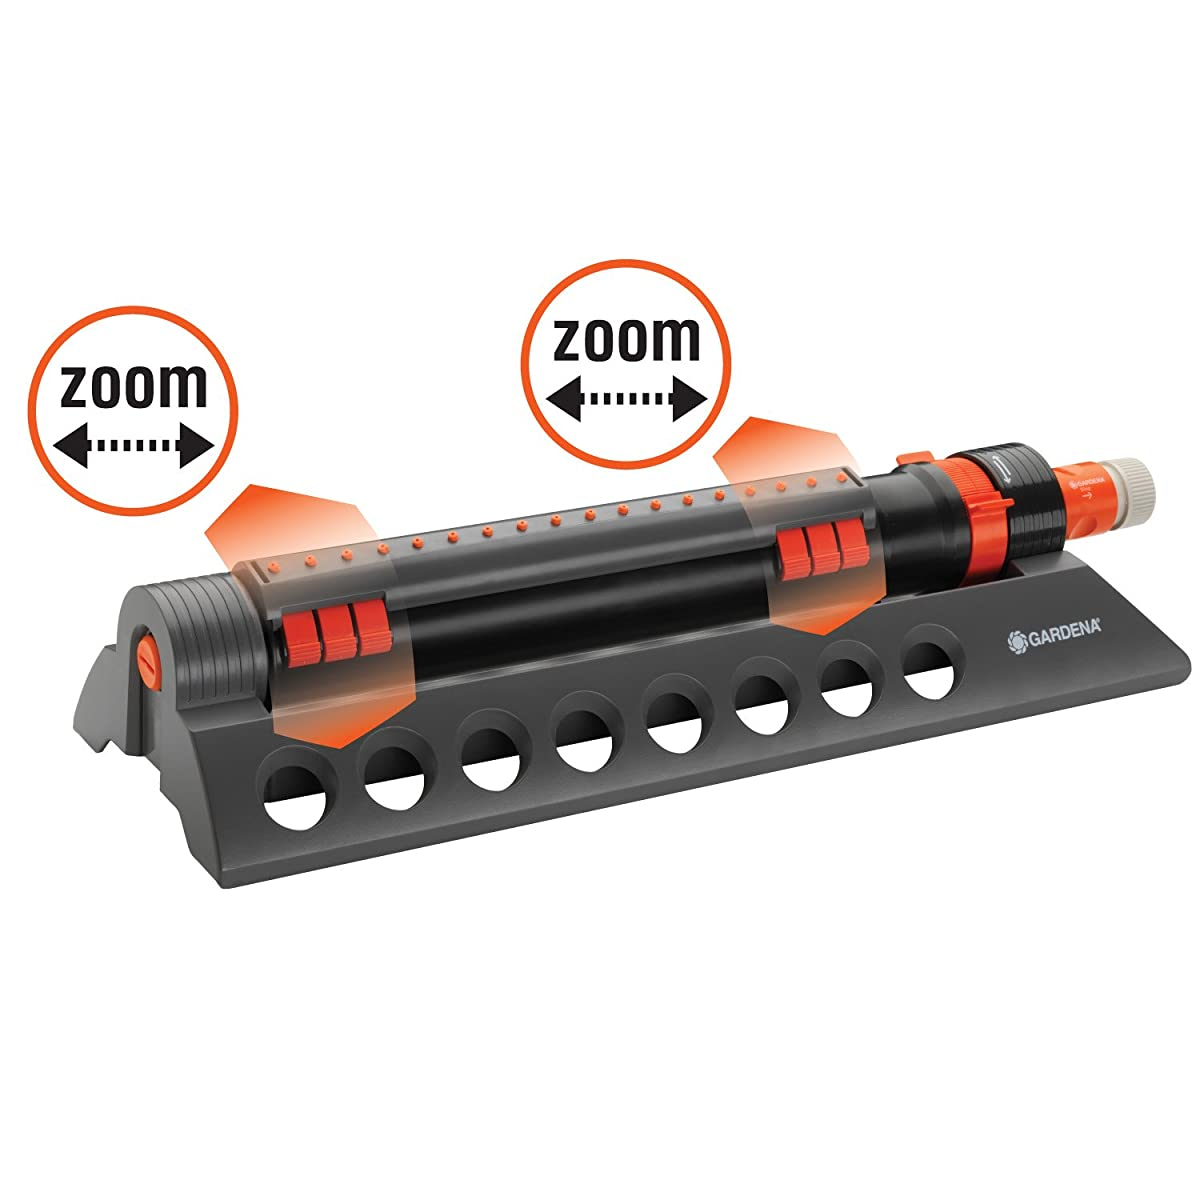 Gardena 34200 Comfort 3900-Square Foot Aqua Zoom Oscillating Sprinkler with Adjustable Width and Flow Control